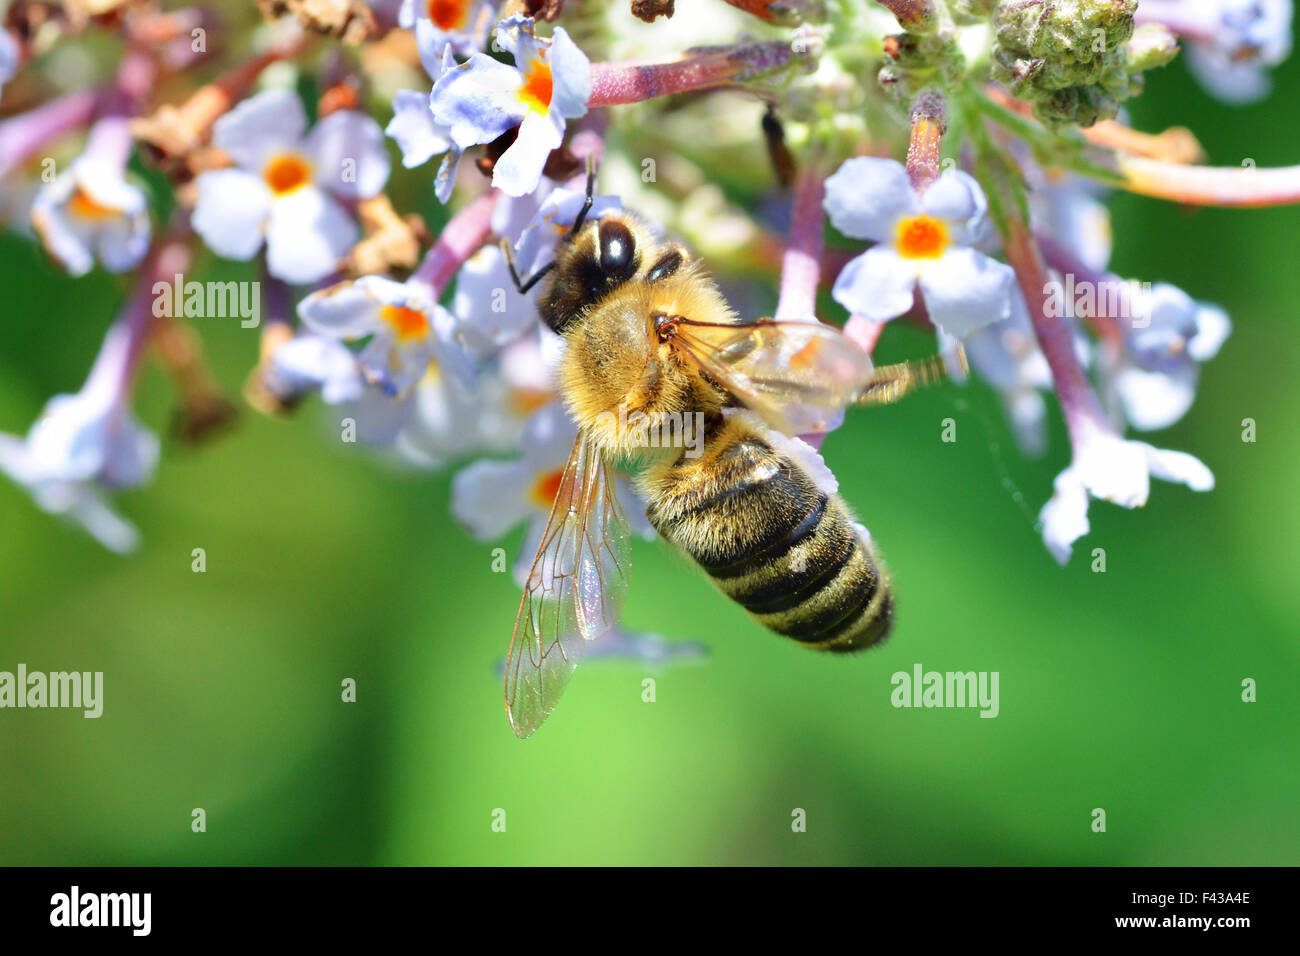 A bee feeds on a garden plant - Stock Image